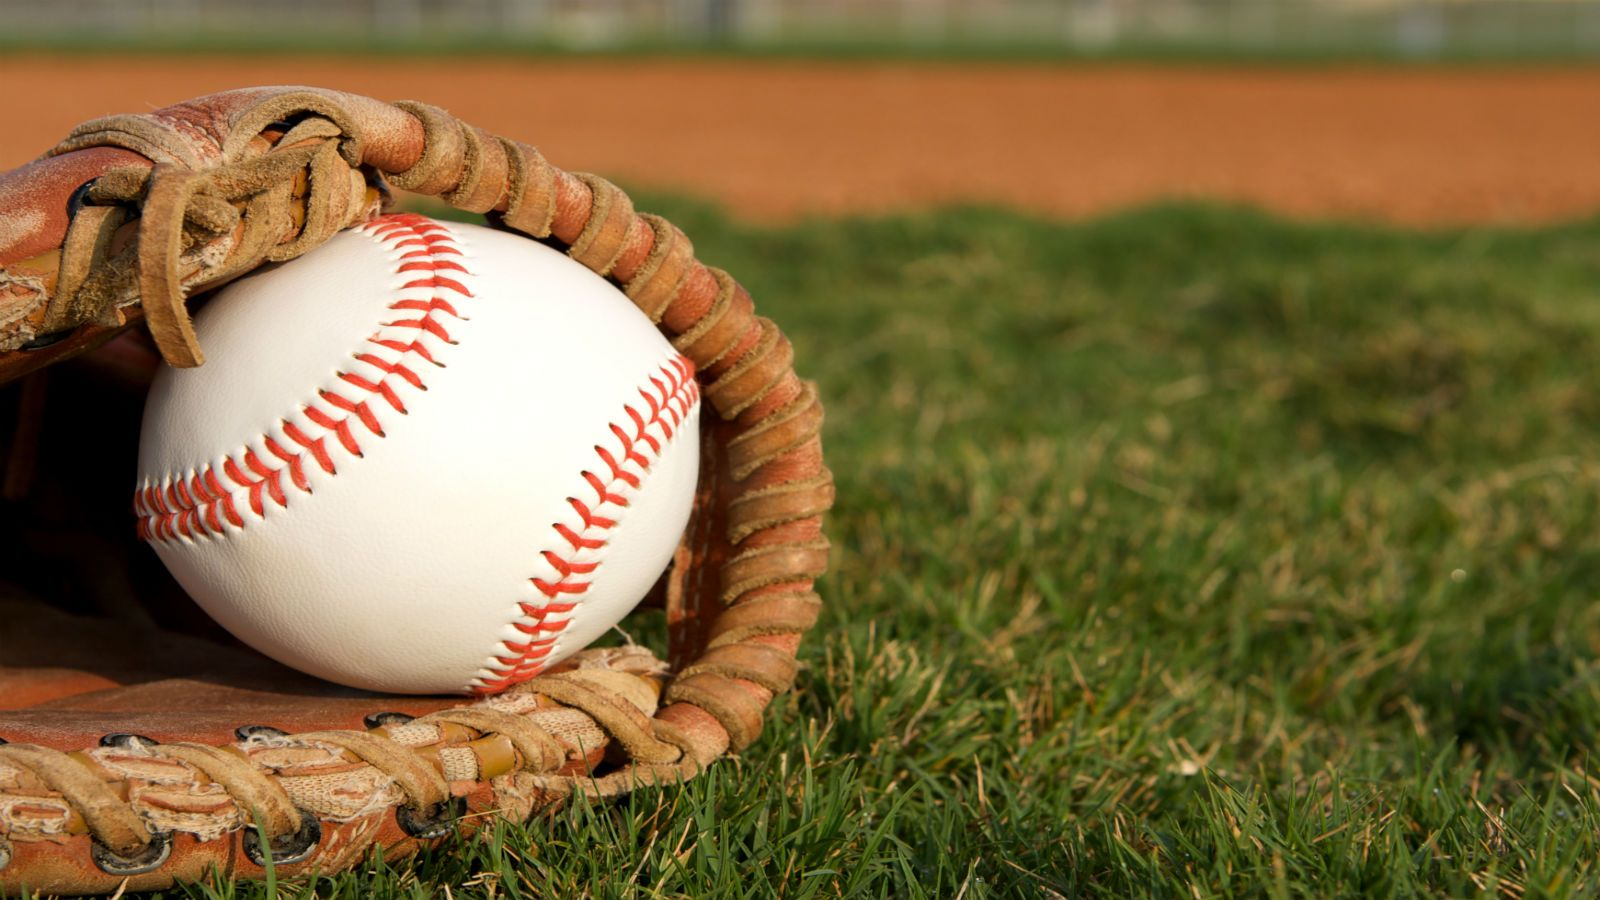 richmond tournaments - baseball